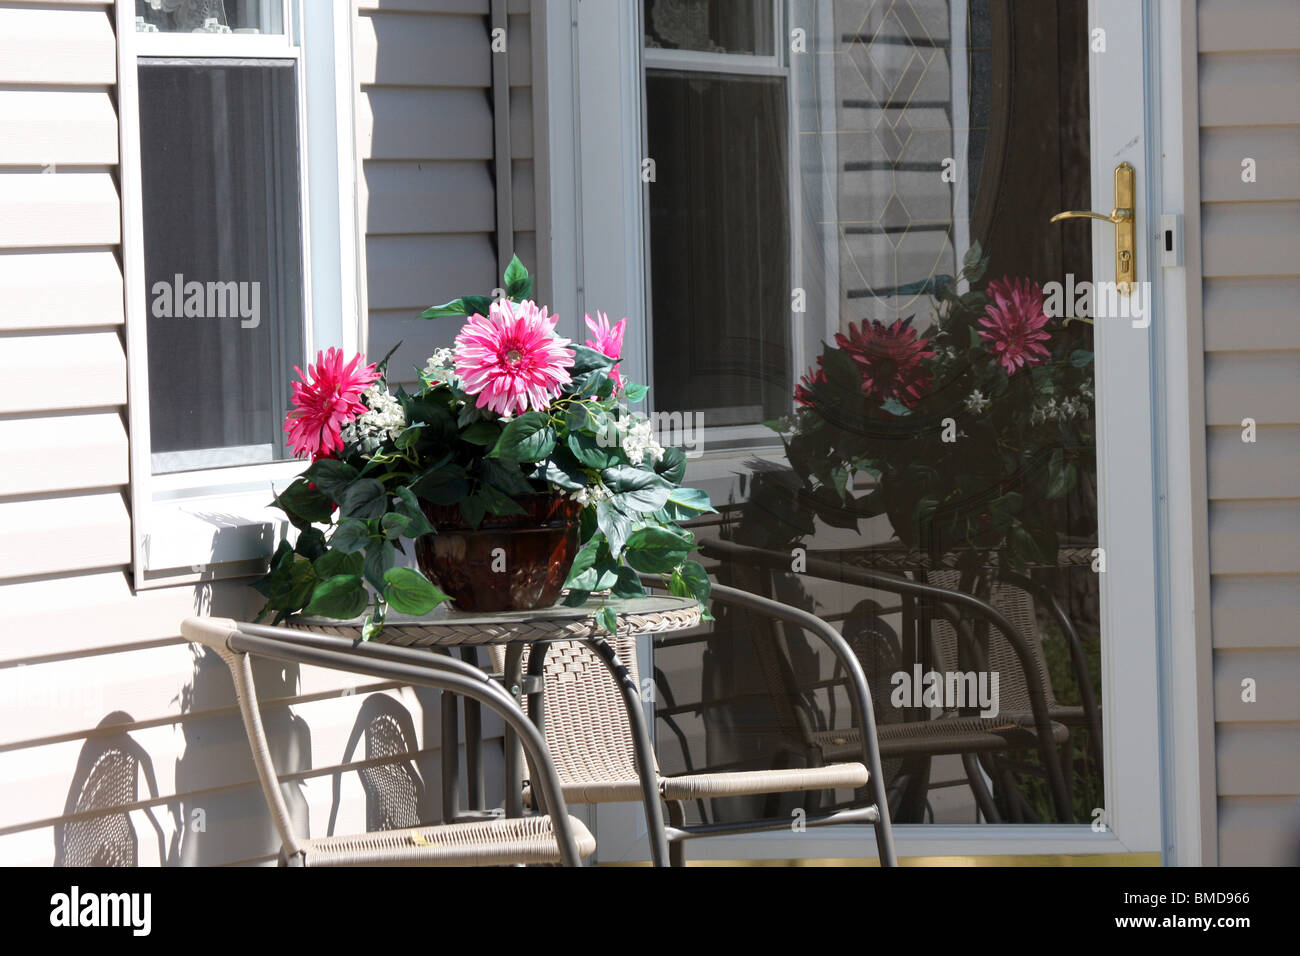 A plant on the porch of a residential home - Stock Image